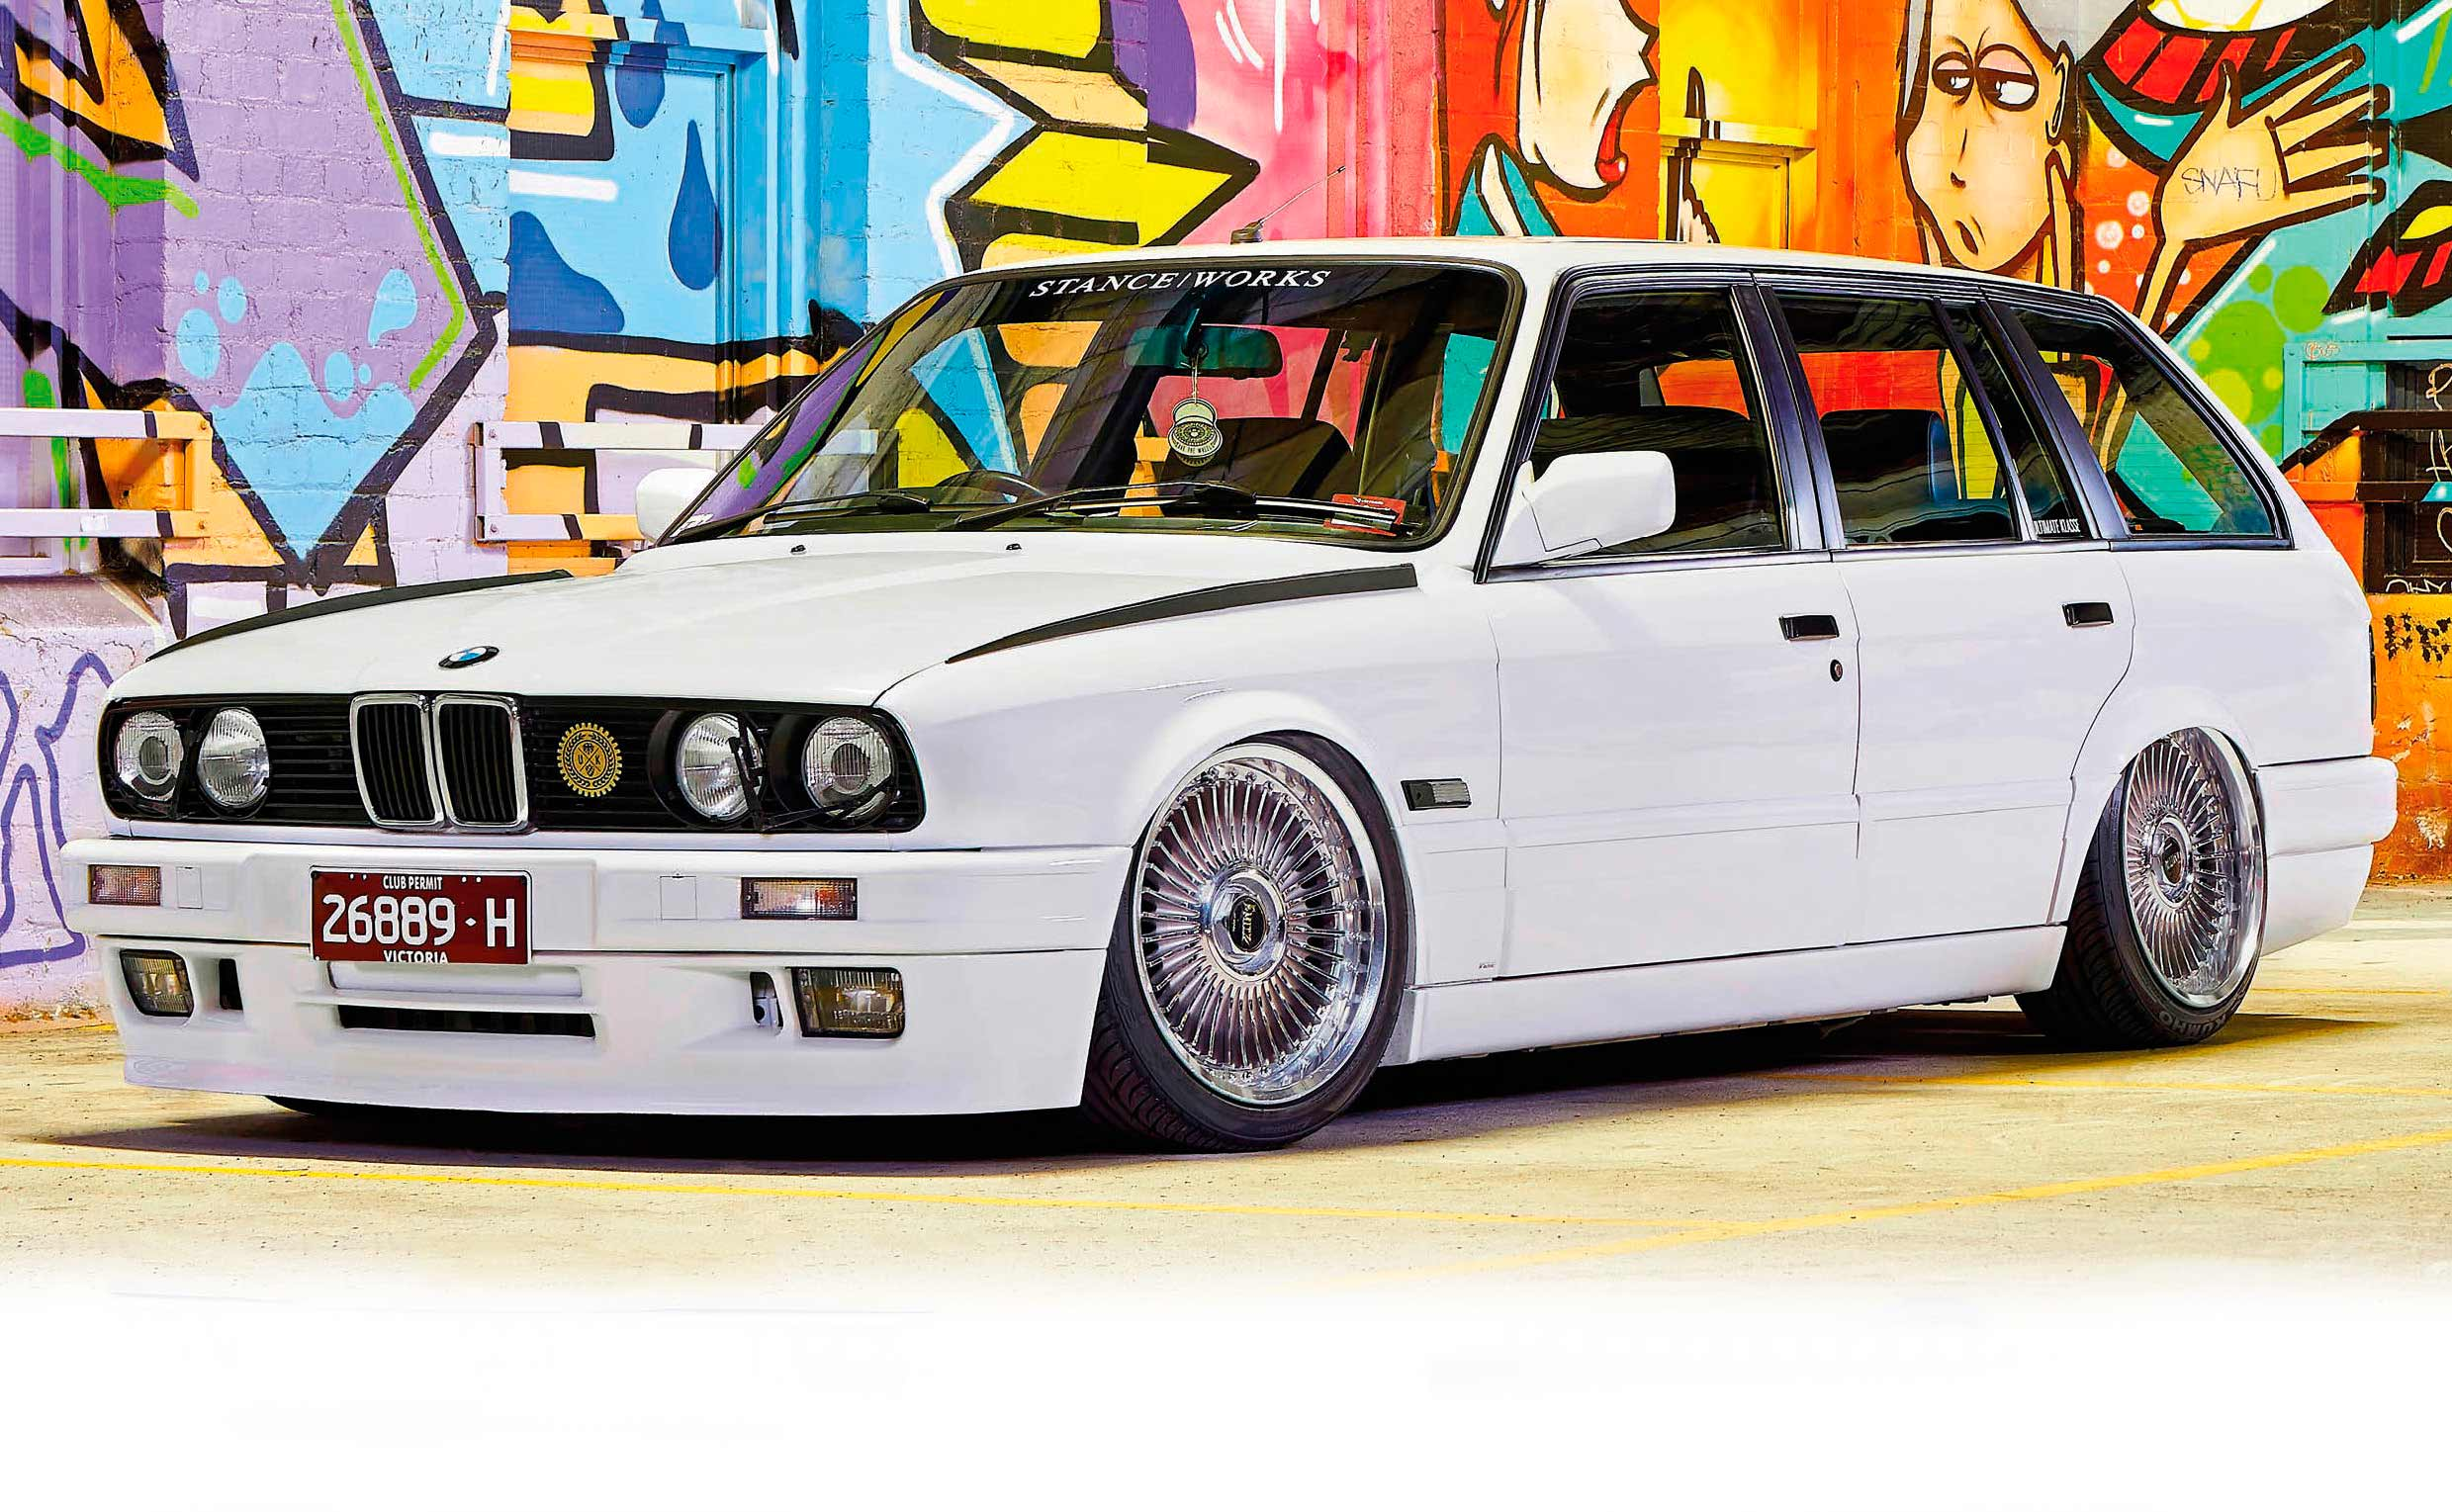 Passion Wagon 1988 BMW 325i Touring E30 from Oz on ITBs